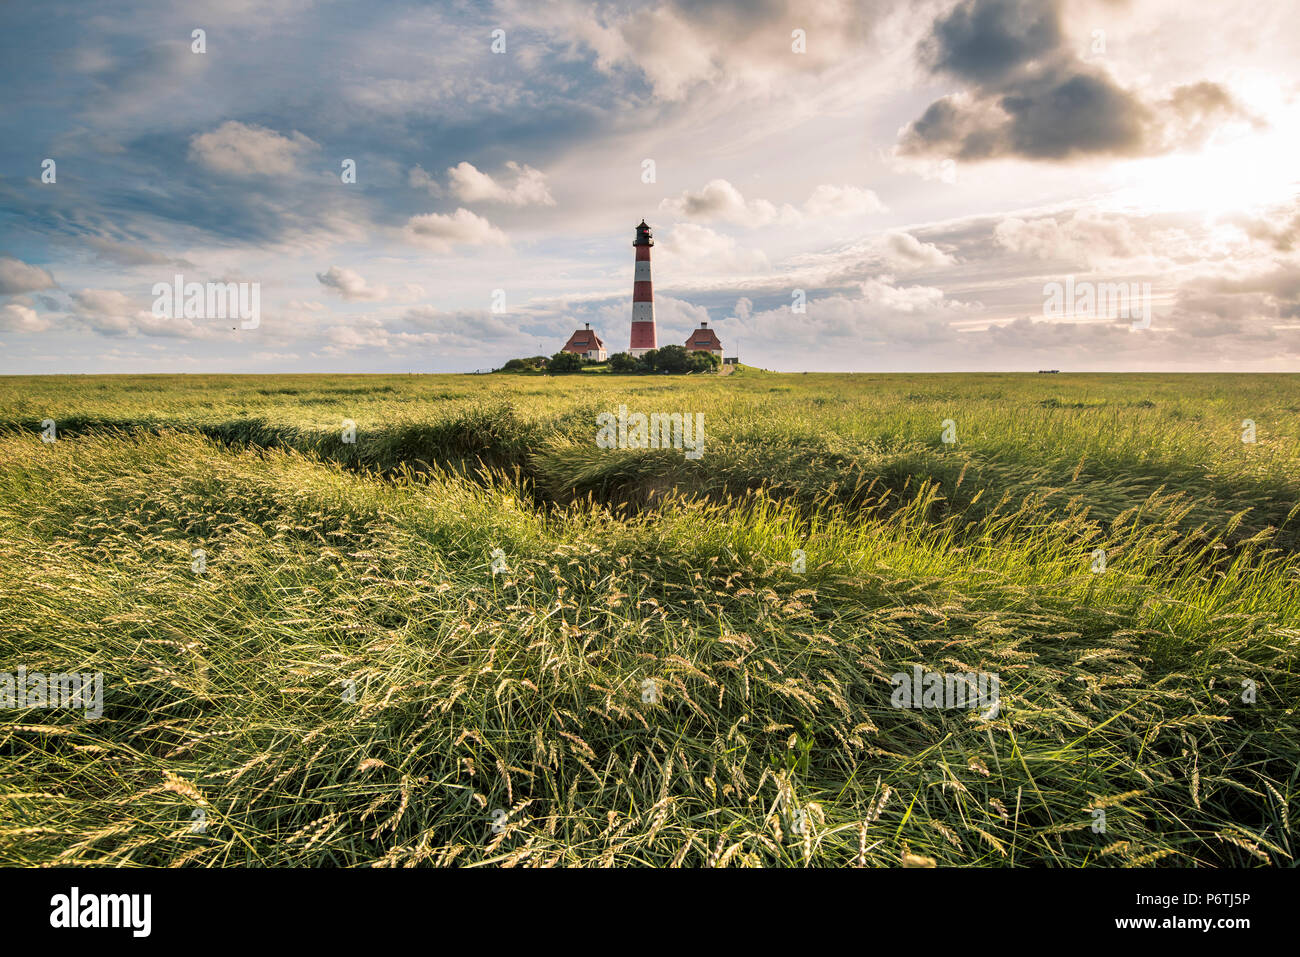 Westerhever lighthouse, Eiderstedt, North Frisia, Schleswig-Holstein, Germany. - Stock Image